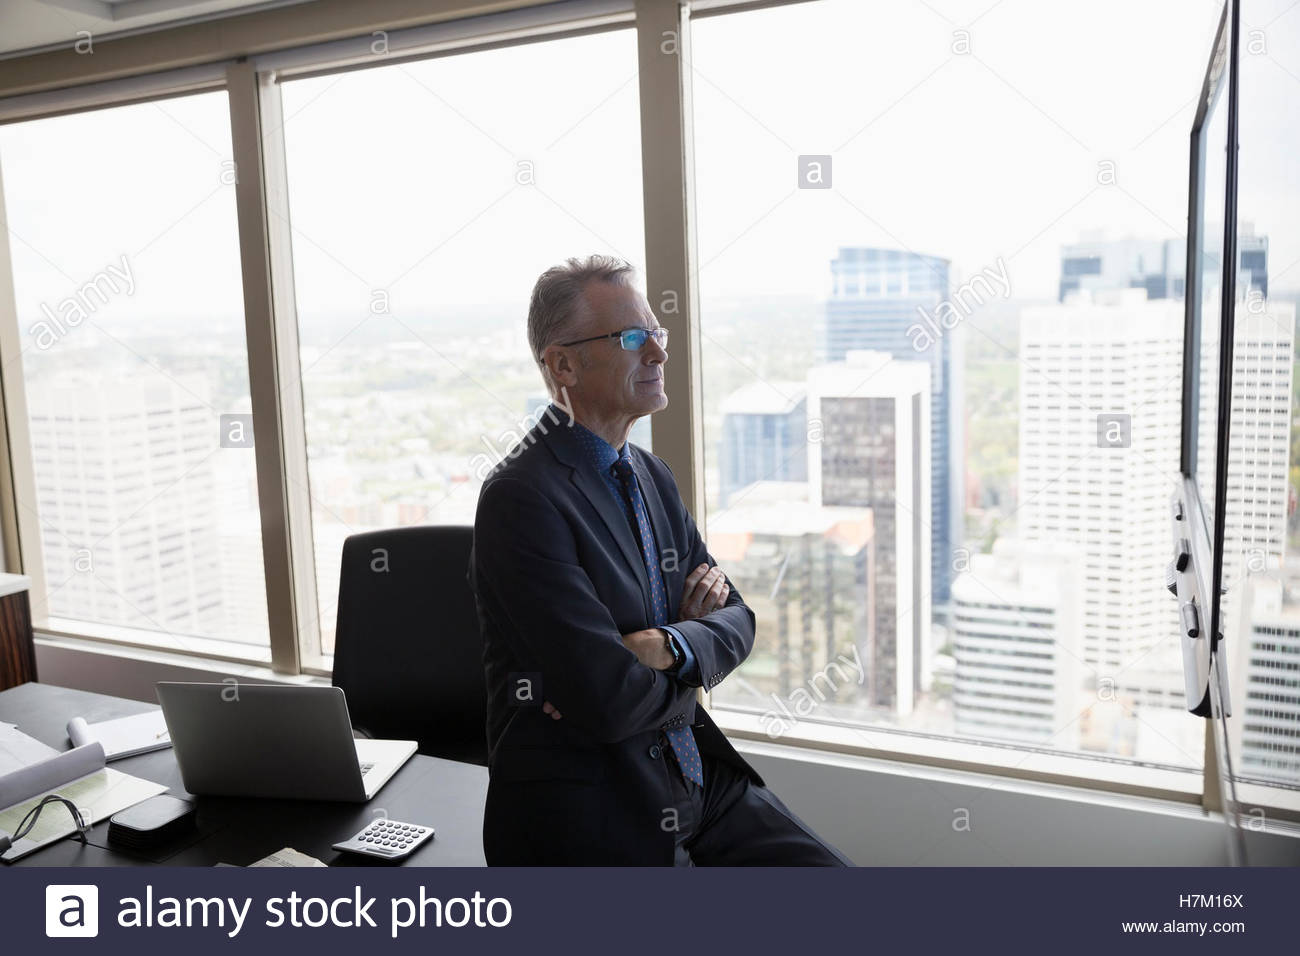 Serious businessman at television screen in urban conference room - Stock Image